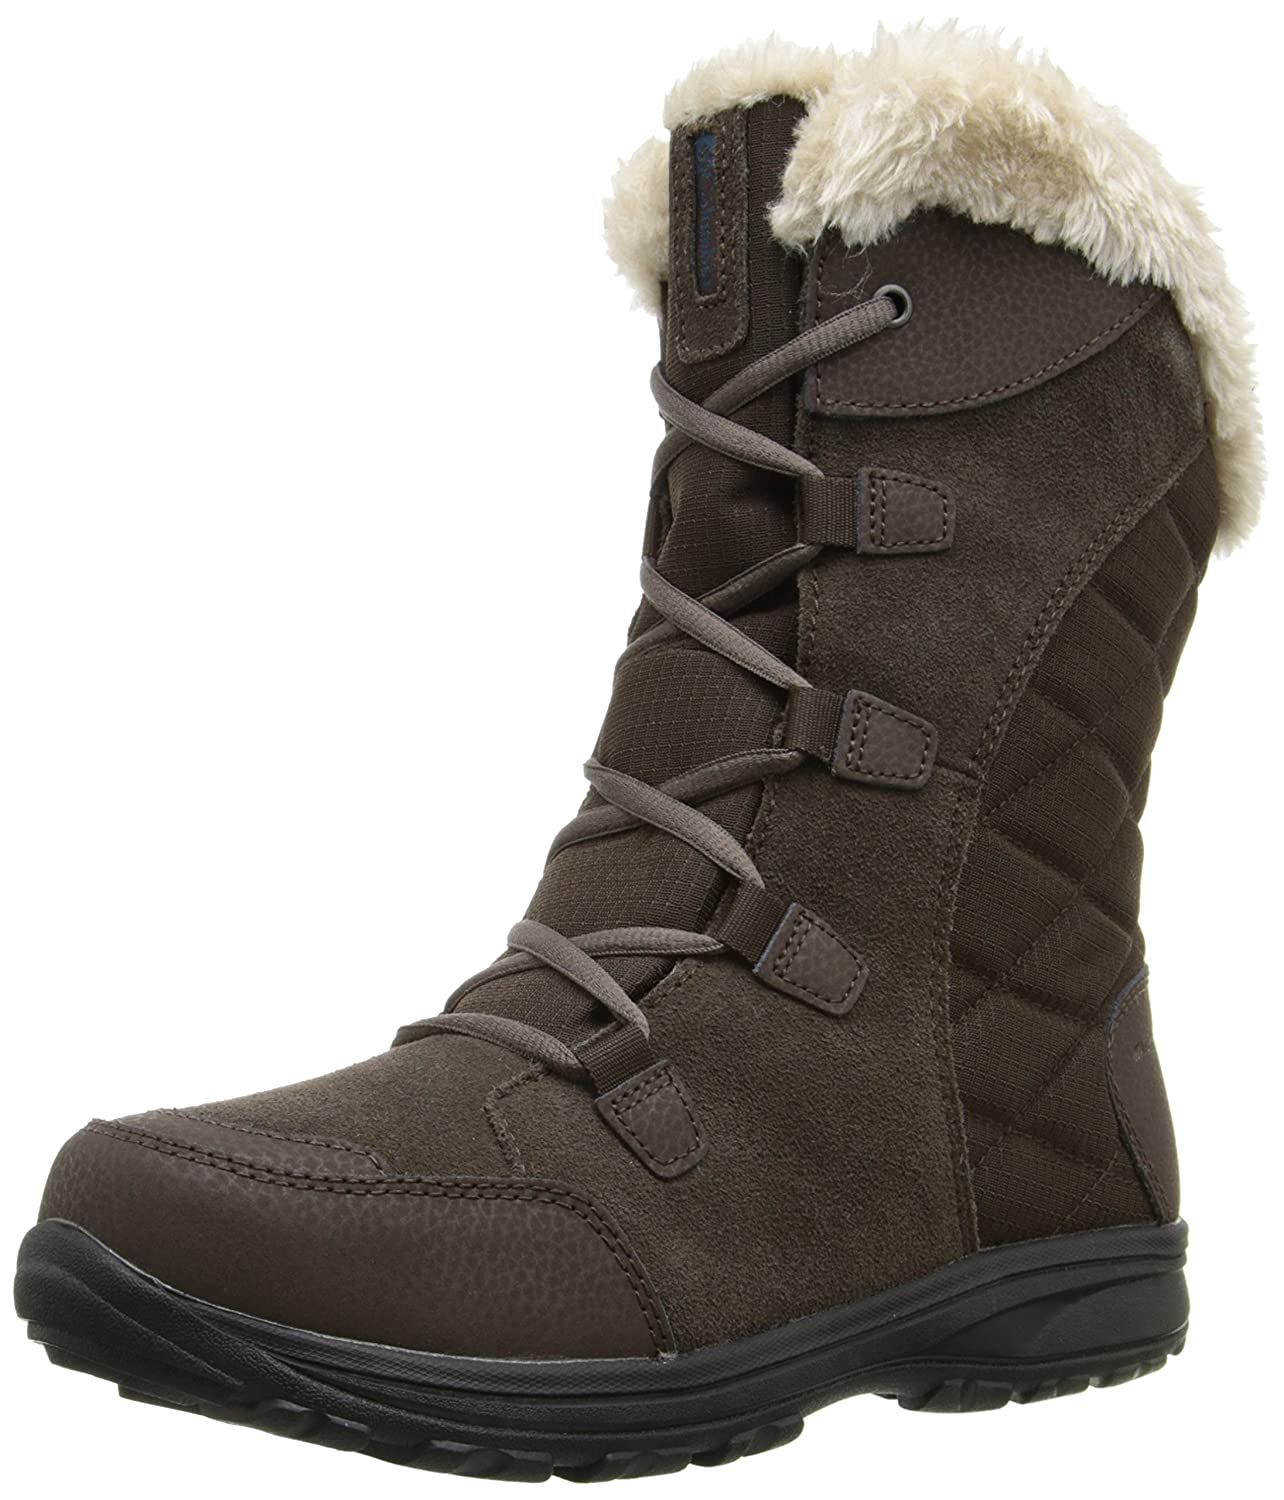 Columbia Women's Ice Maiden II Snow Boot B00GW94ZTU 11 B(M) US|Cordovan, Siberia